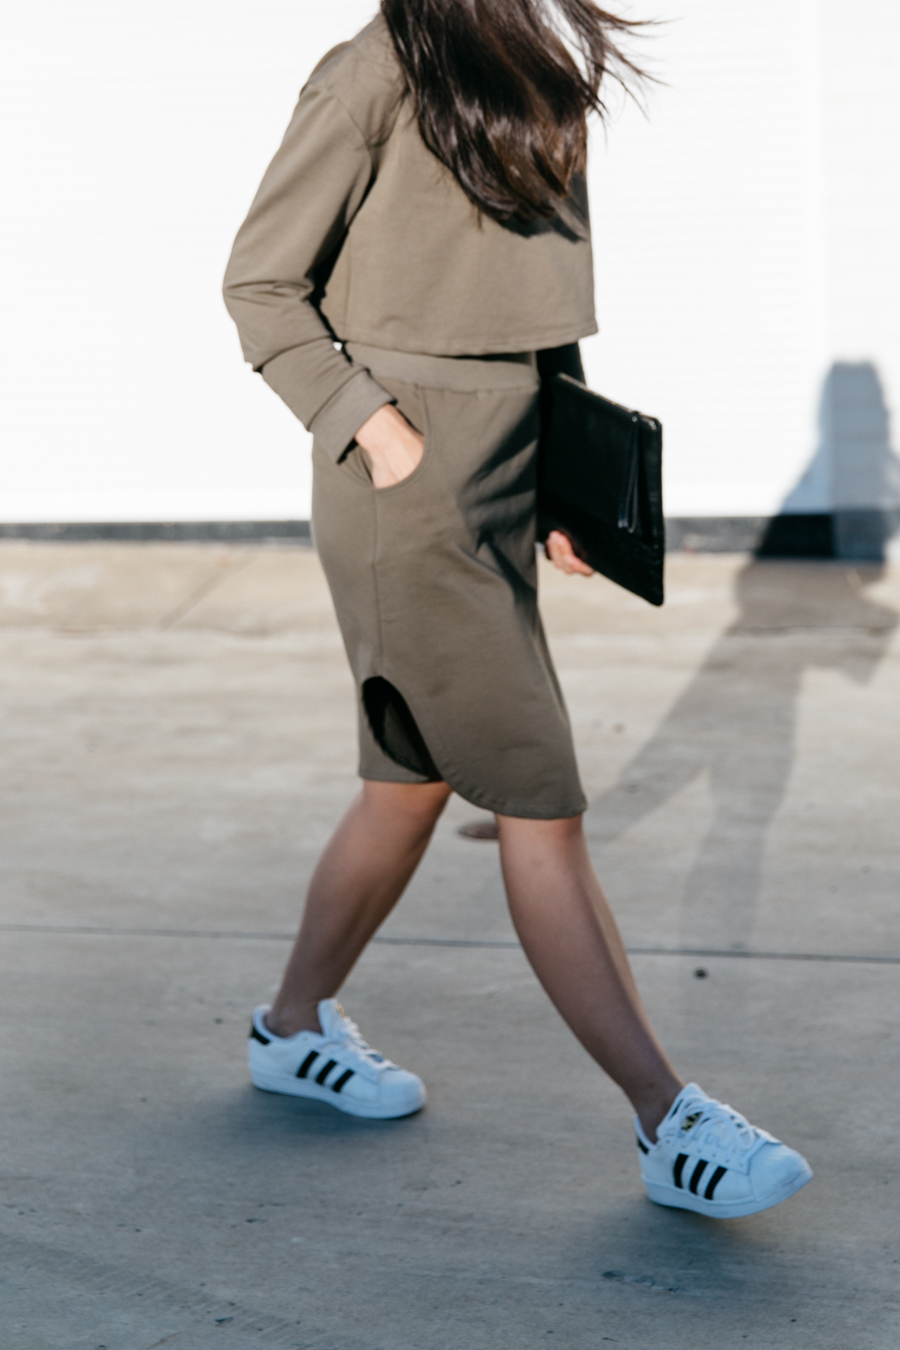 Adidas superstar sneakers & khaki skirt.